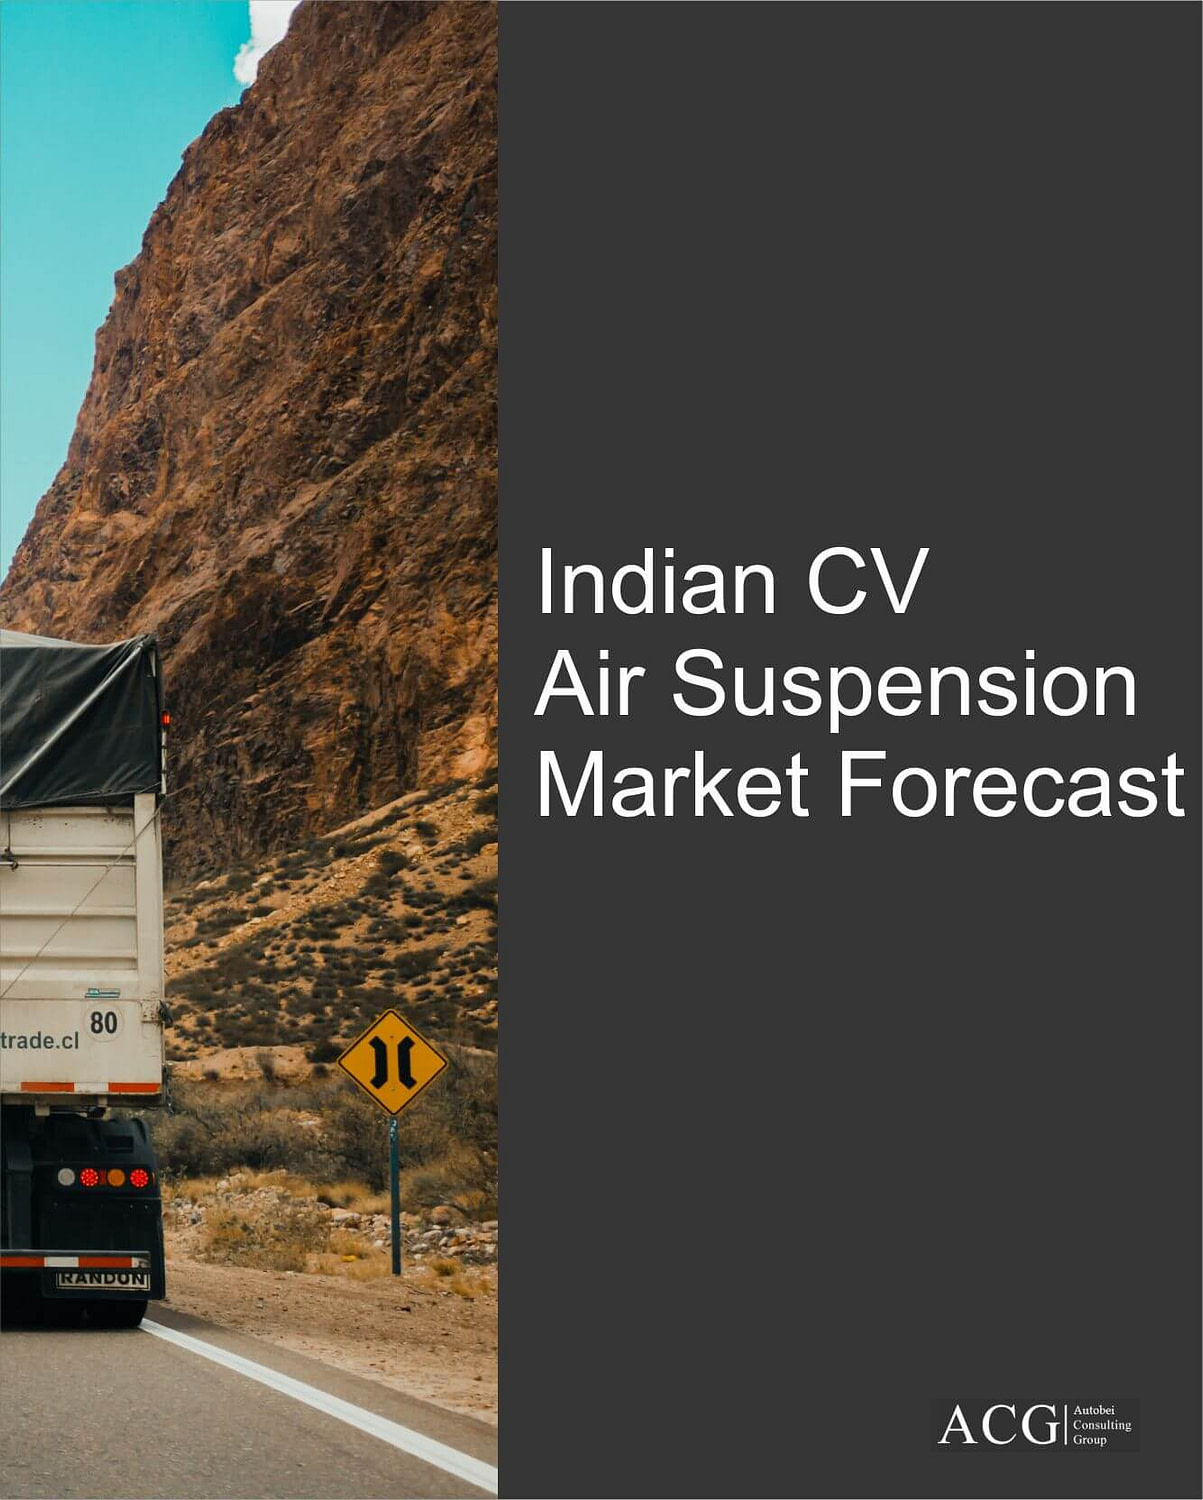 Indian Commercial Vehicle Air Suspension Market Forecast